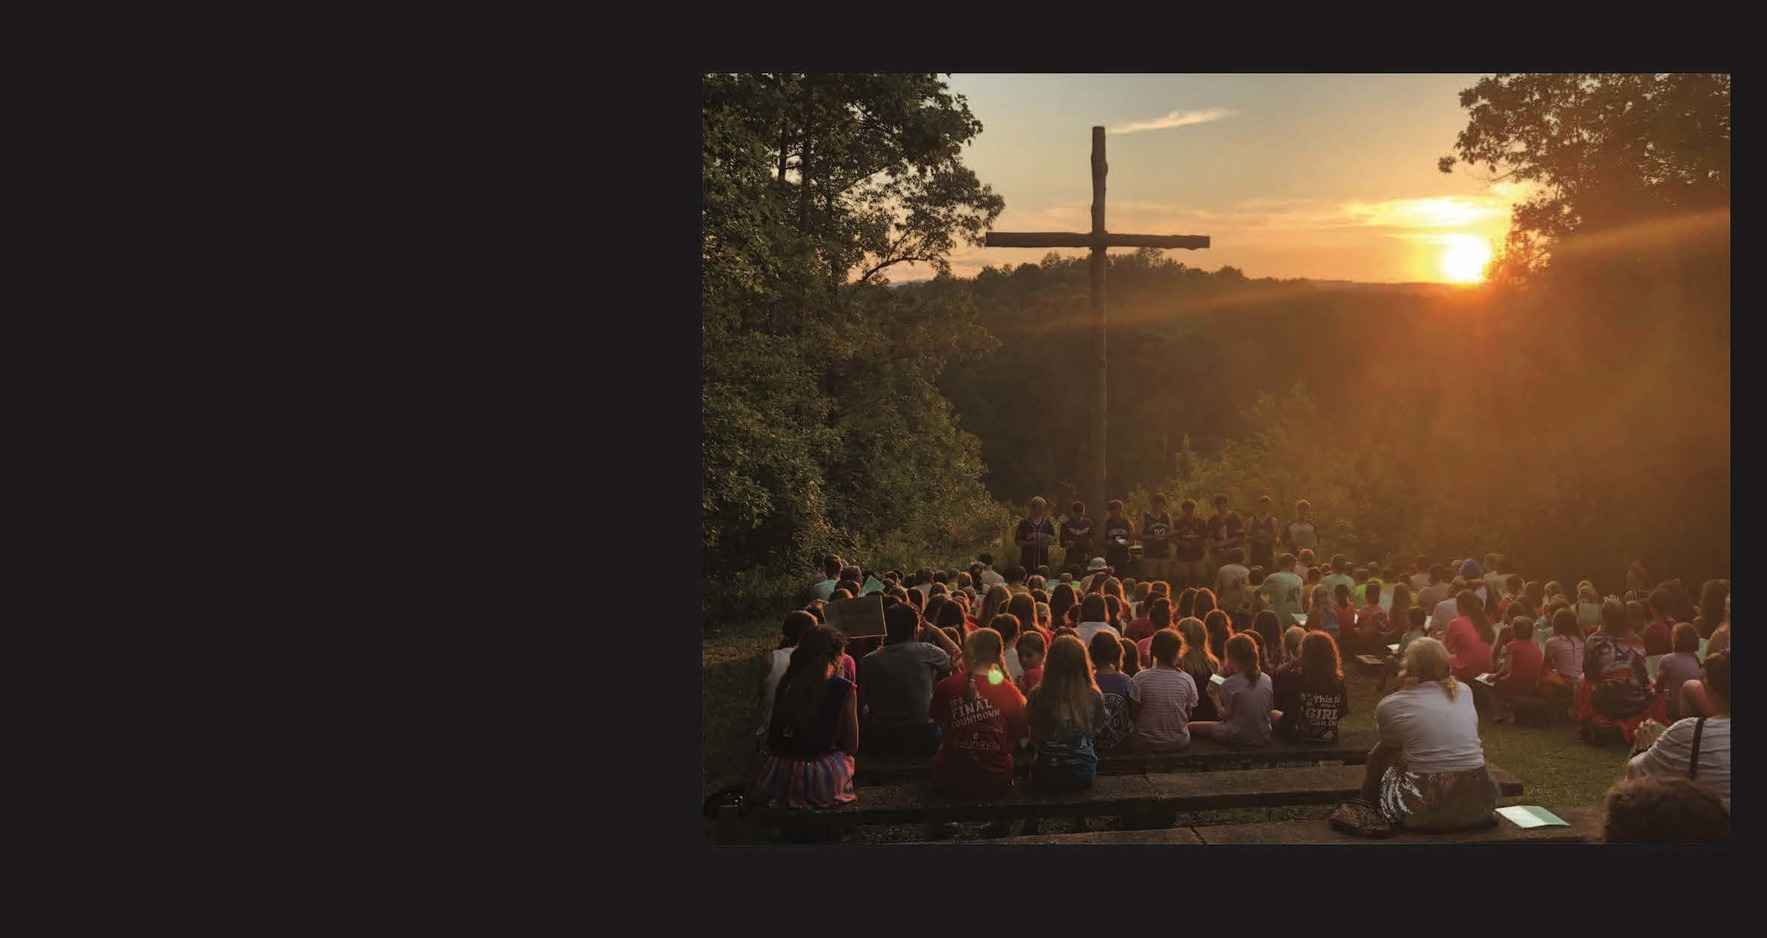 What do you love best of all about Camp? image